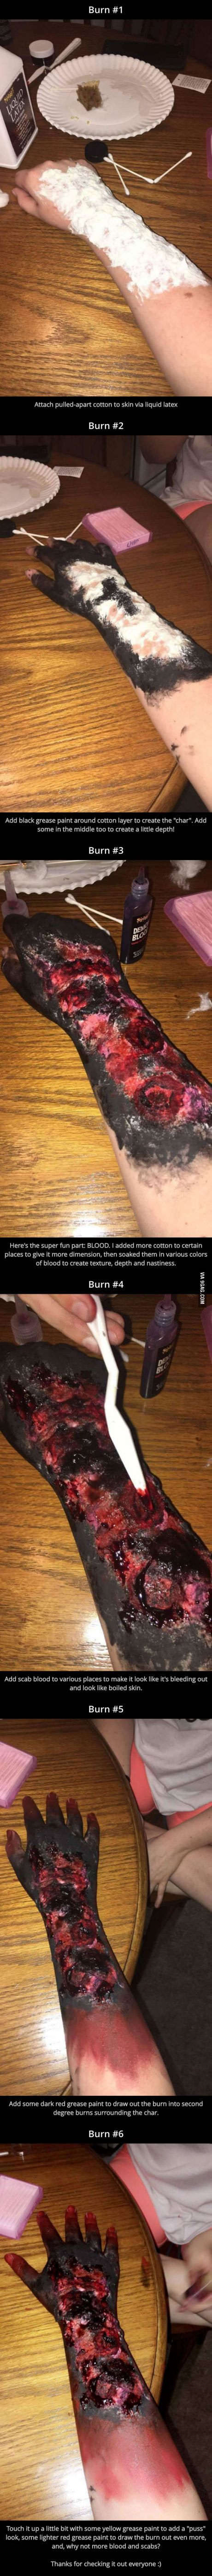 Special FX Burn Tutorial